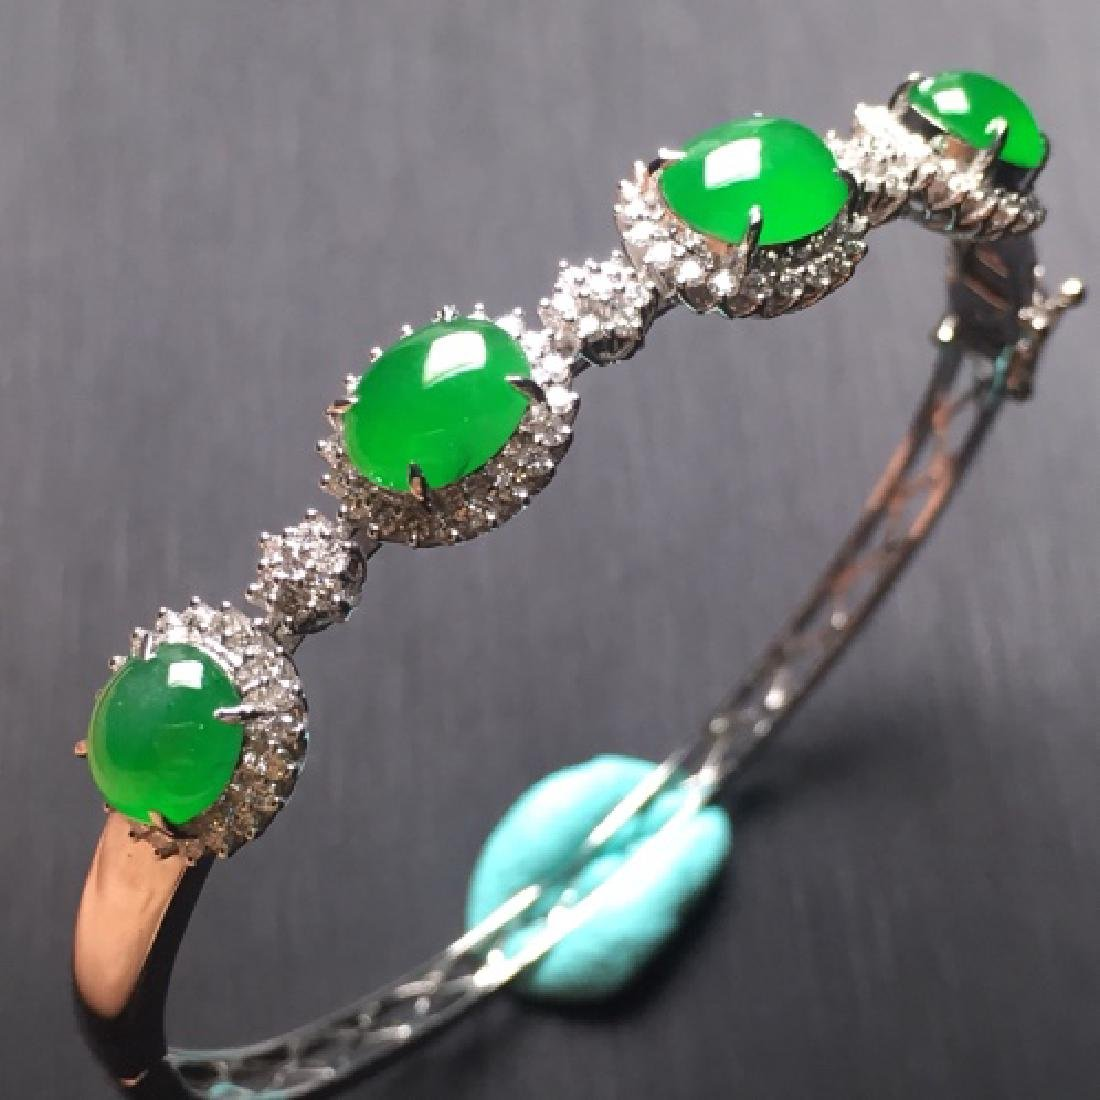 A NATURAL OVAL-SHAPED YANGLV JADEITE BEADS BRACELET